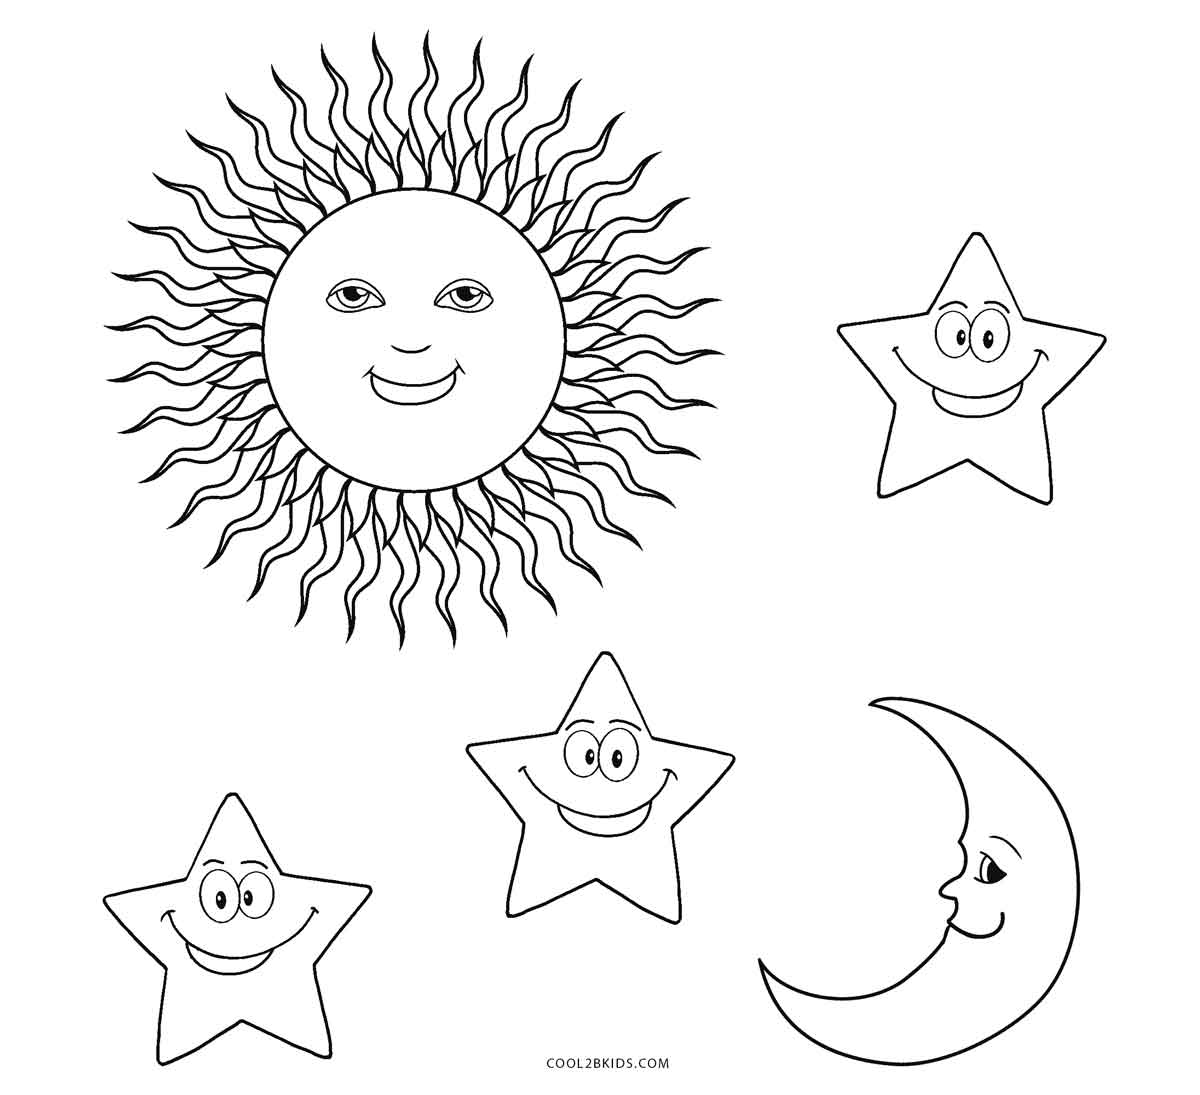 Free printable sun coloring pages for kids cool2bkids for Sun moon coloring pages